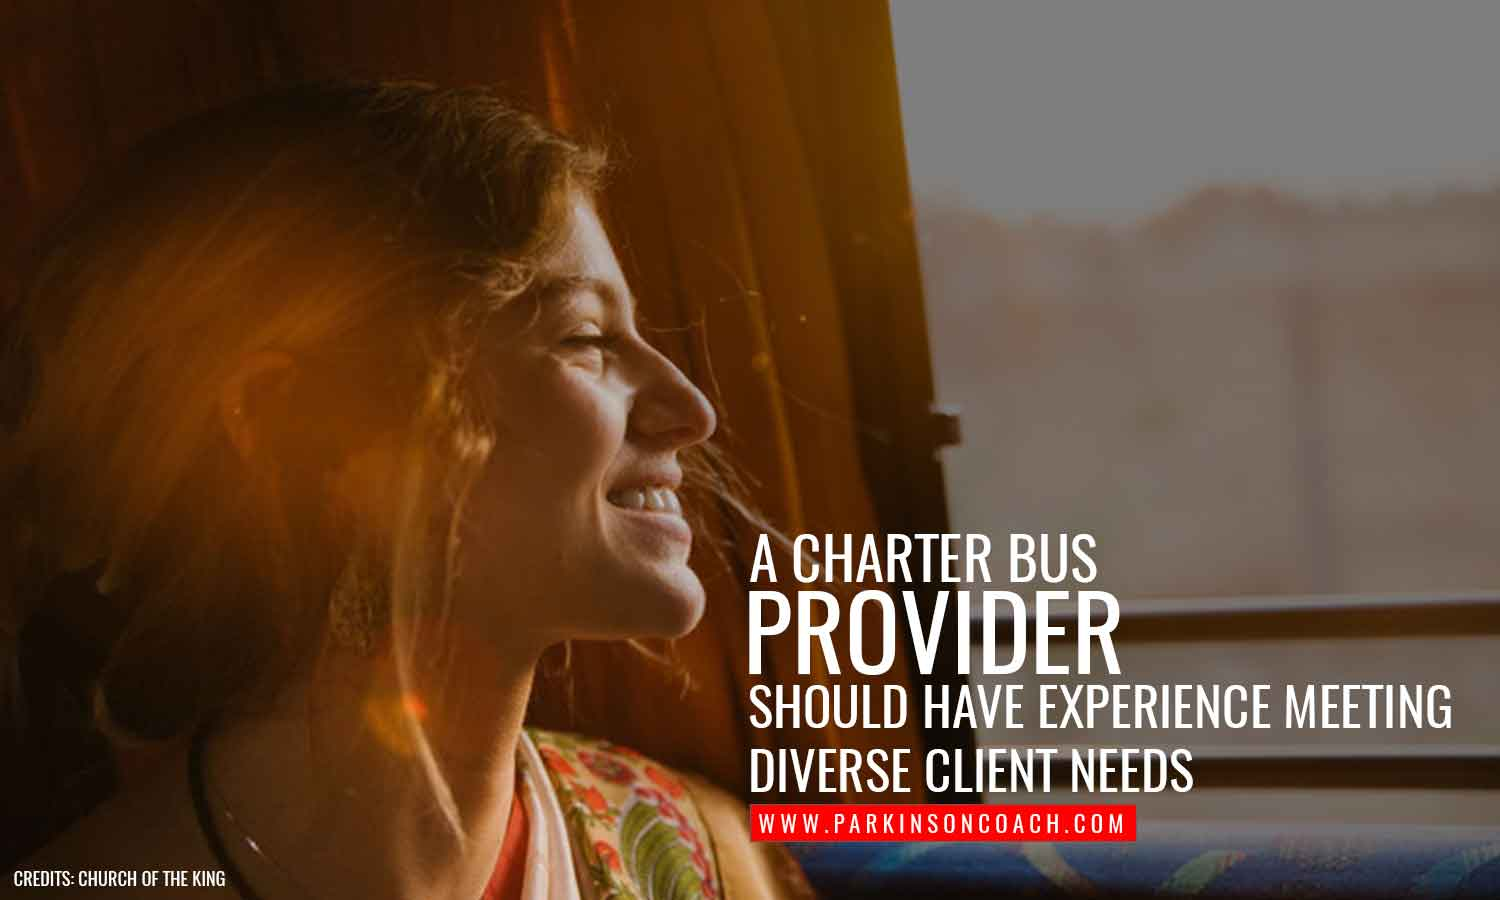 charter bus provider experience meeting diverse client needs